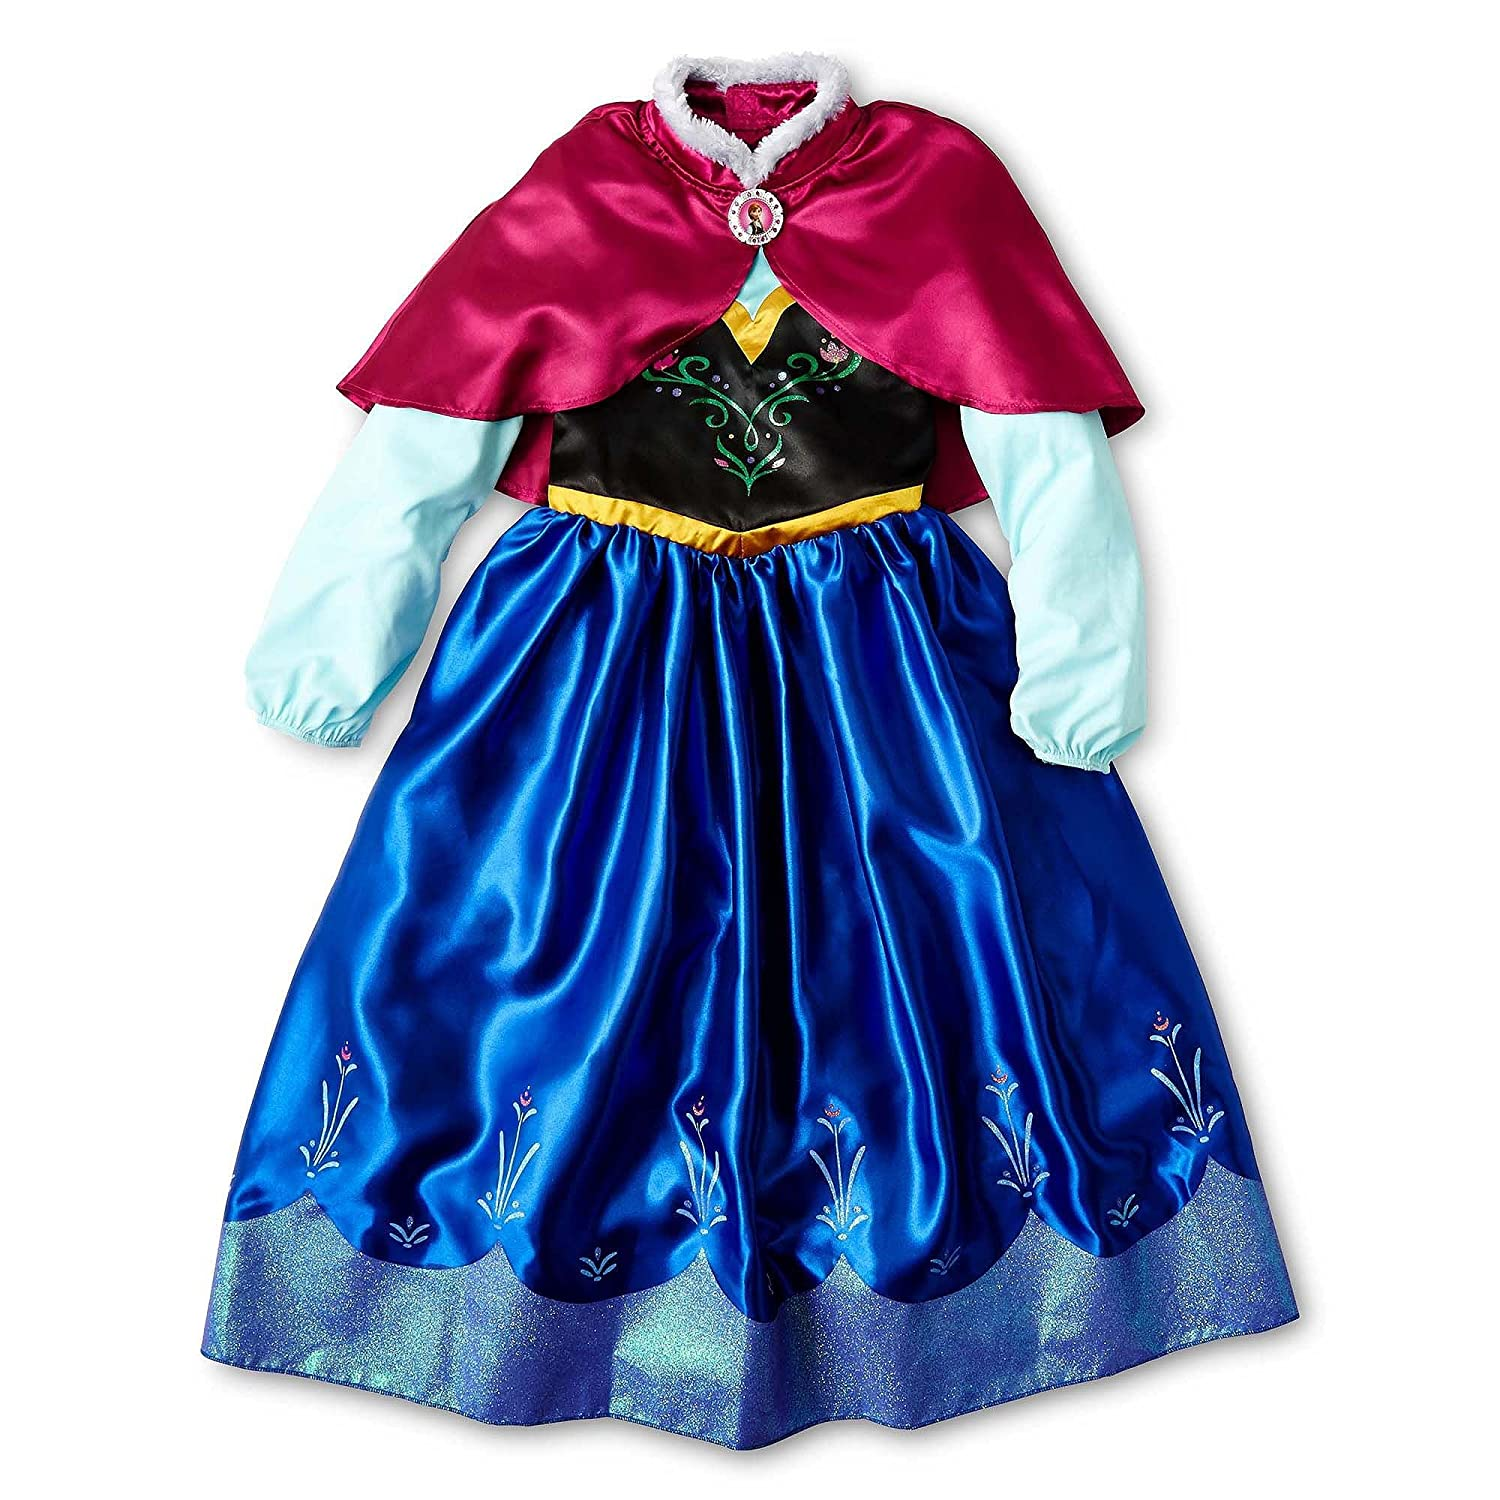 Amazon.com: Disney Frozen Annas Costume Dress with Cape Size S 5/6 ...